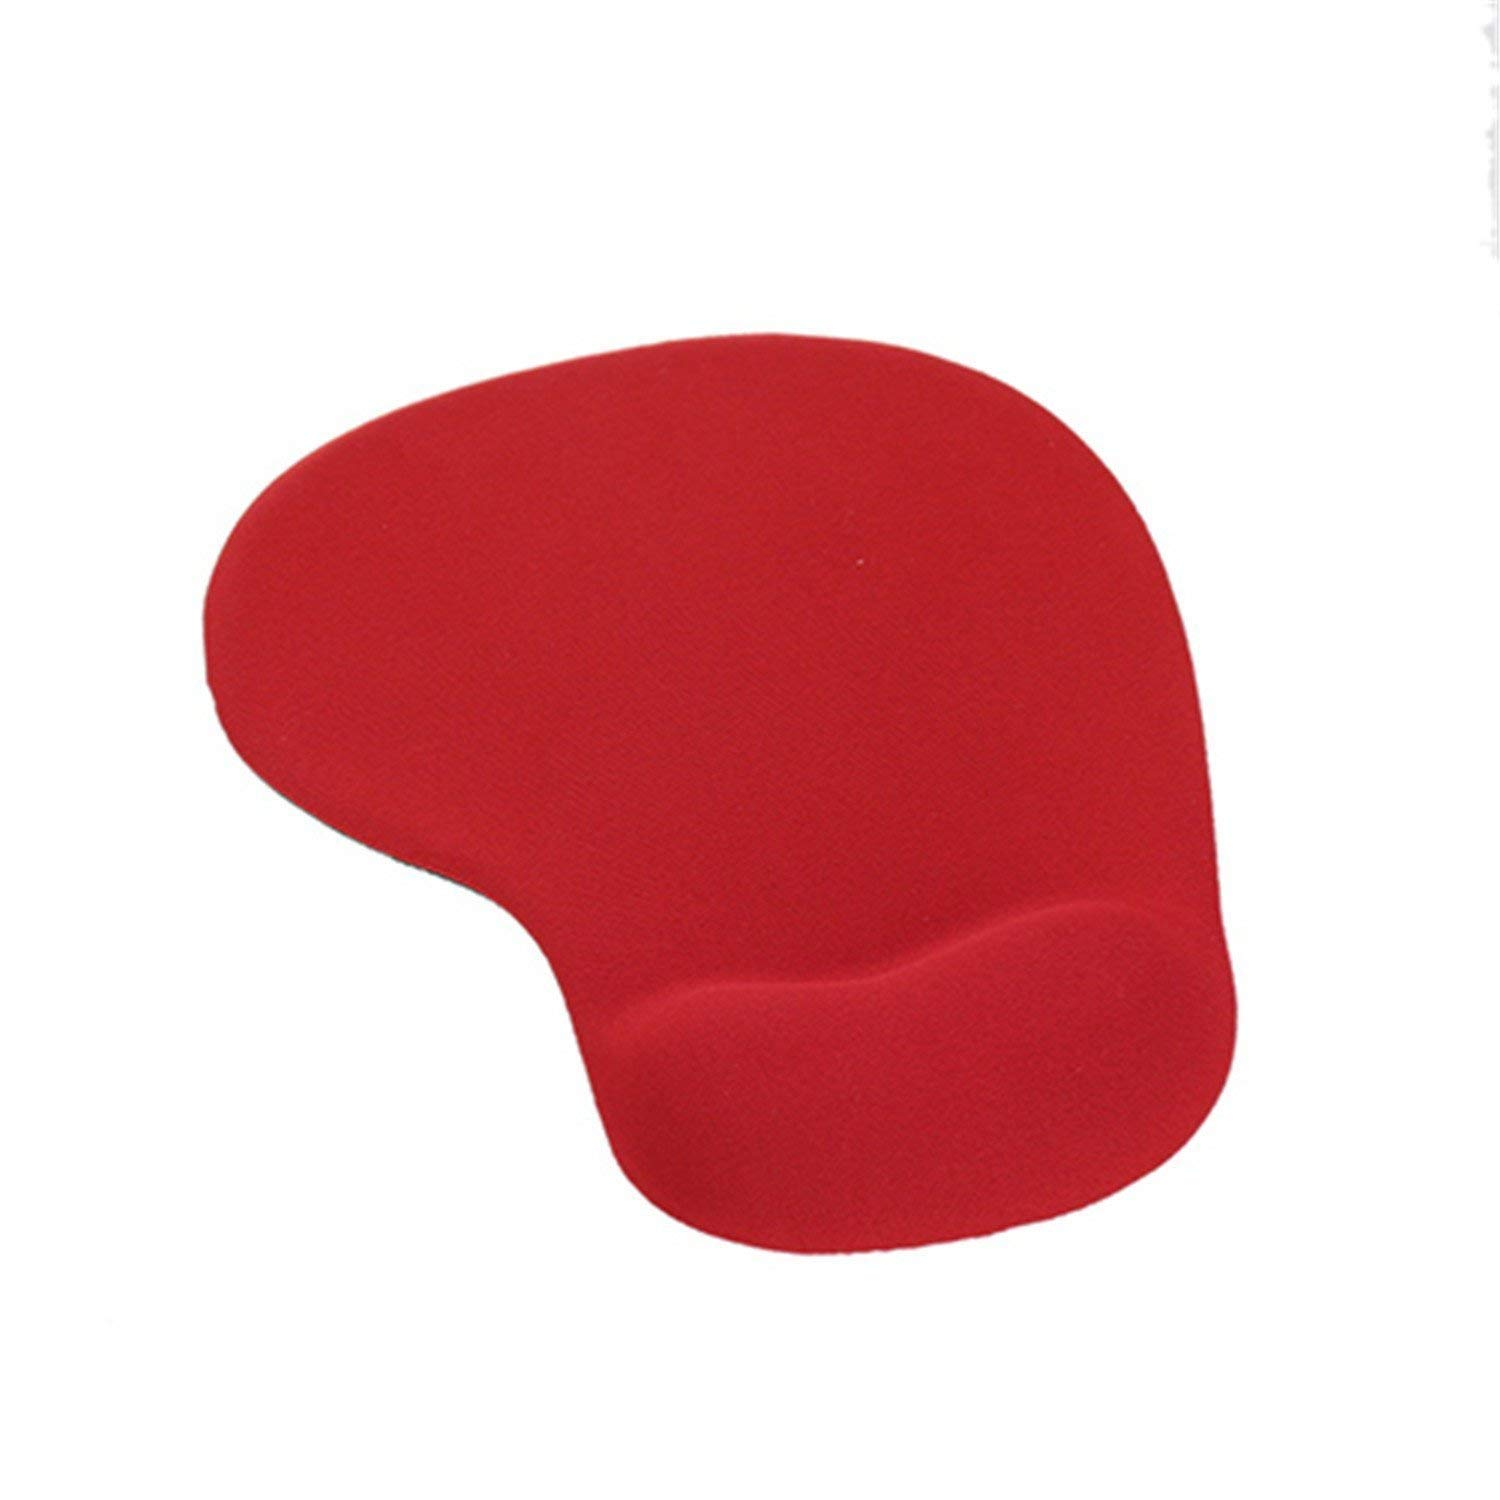 IVYRISE Mouse Pad with Wrist Support Black Silicone Gel Mouse Mat with Wrist Rests Support, Practical Non Slip Wrist Protect Wrist Support Mouse Mat, Red